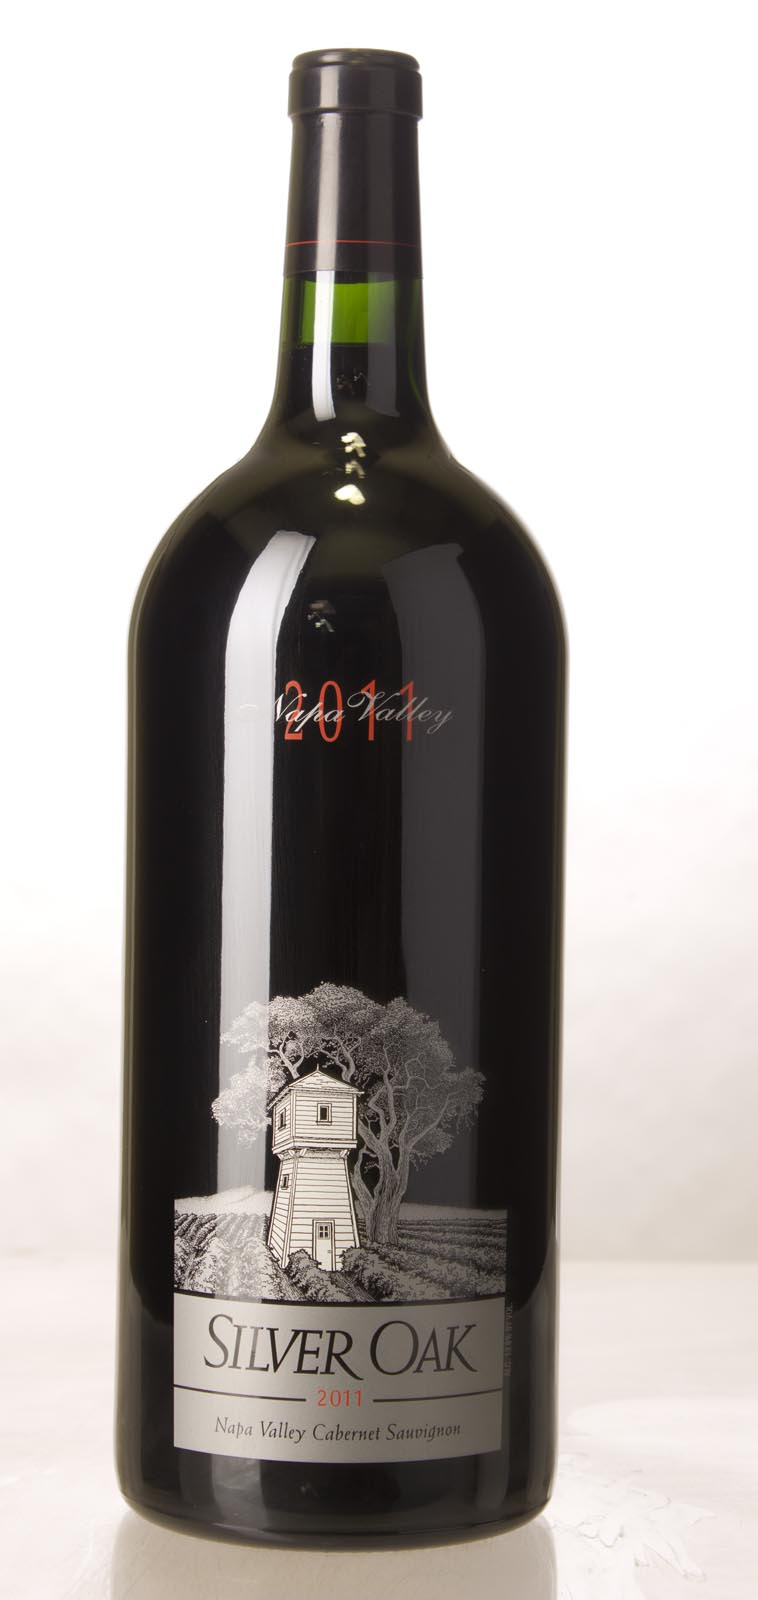 Silver Oak Cabernet Sauvignon Napa Valley 2011, 3L () from The BPW - Merchants of rare and fine wines.